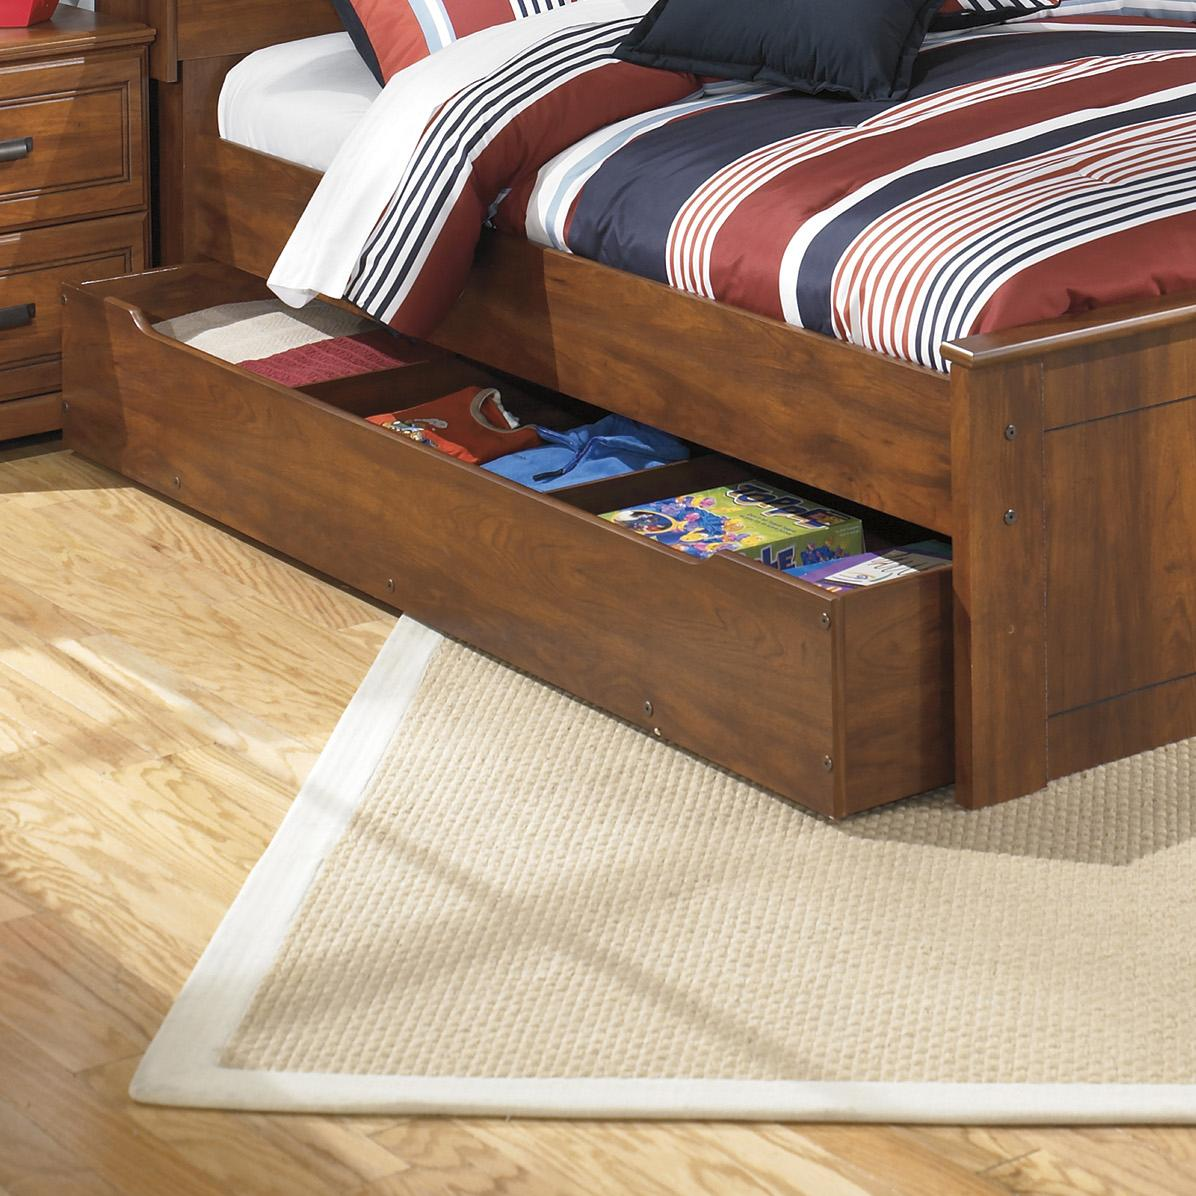 Barchan Trundle Under Bed Storage by Signature Design by Ashley at Northeast Factory Direct